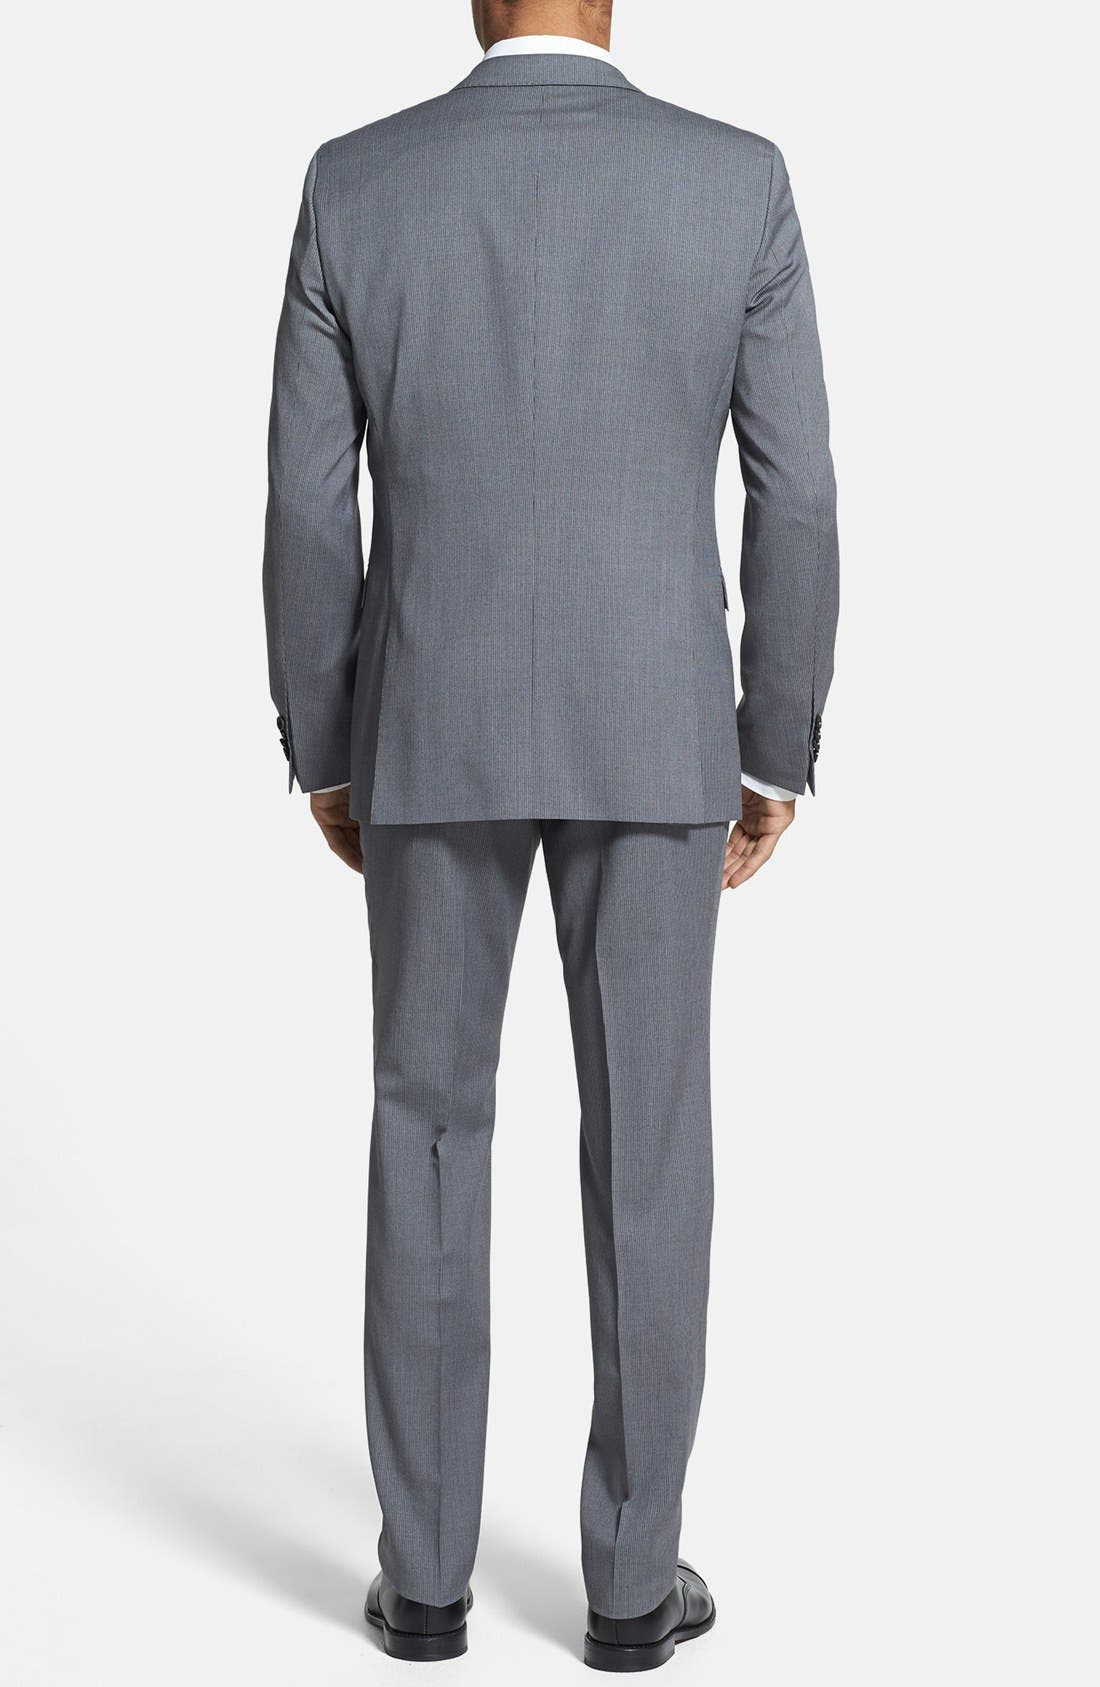 ZZDNUHUGO BOSS,                             BOSS HUGO BOSS 'Ryan/Win' Extra Trim Fit Stripe Suit,                             Alternate thumbnail 4, color,                             030